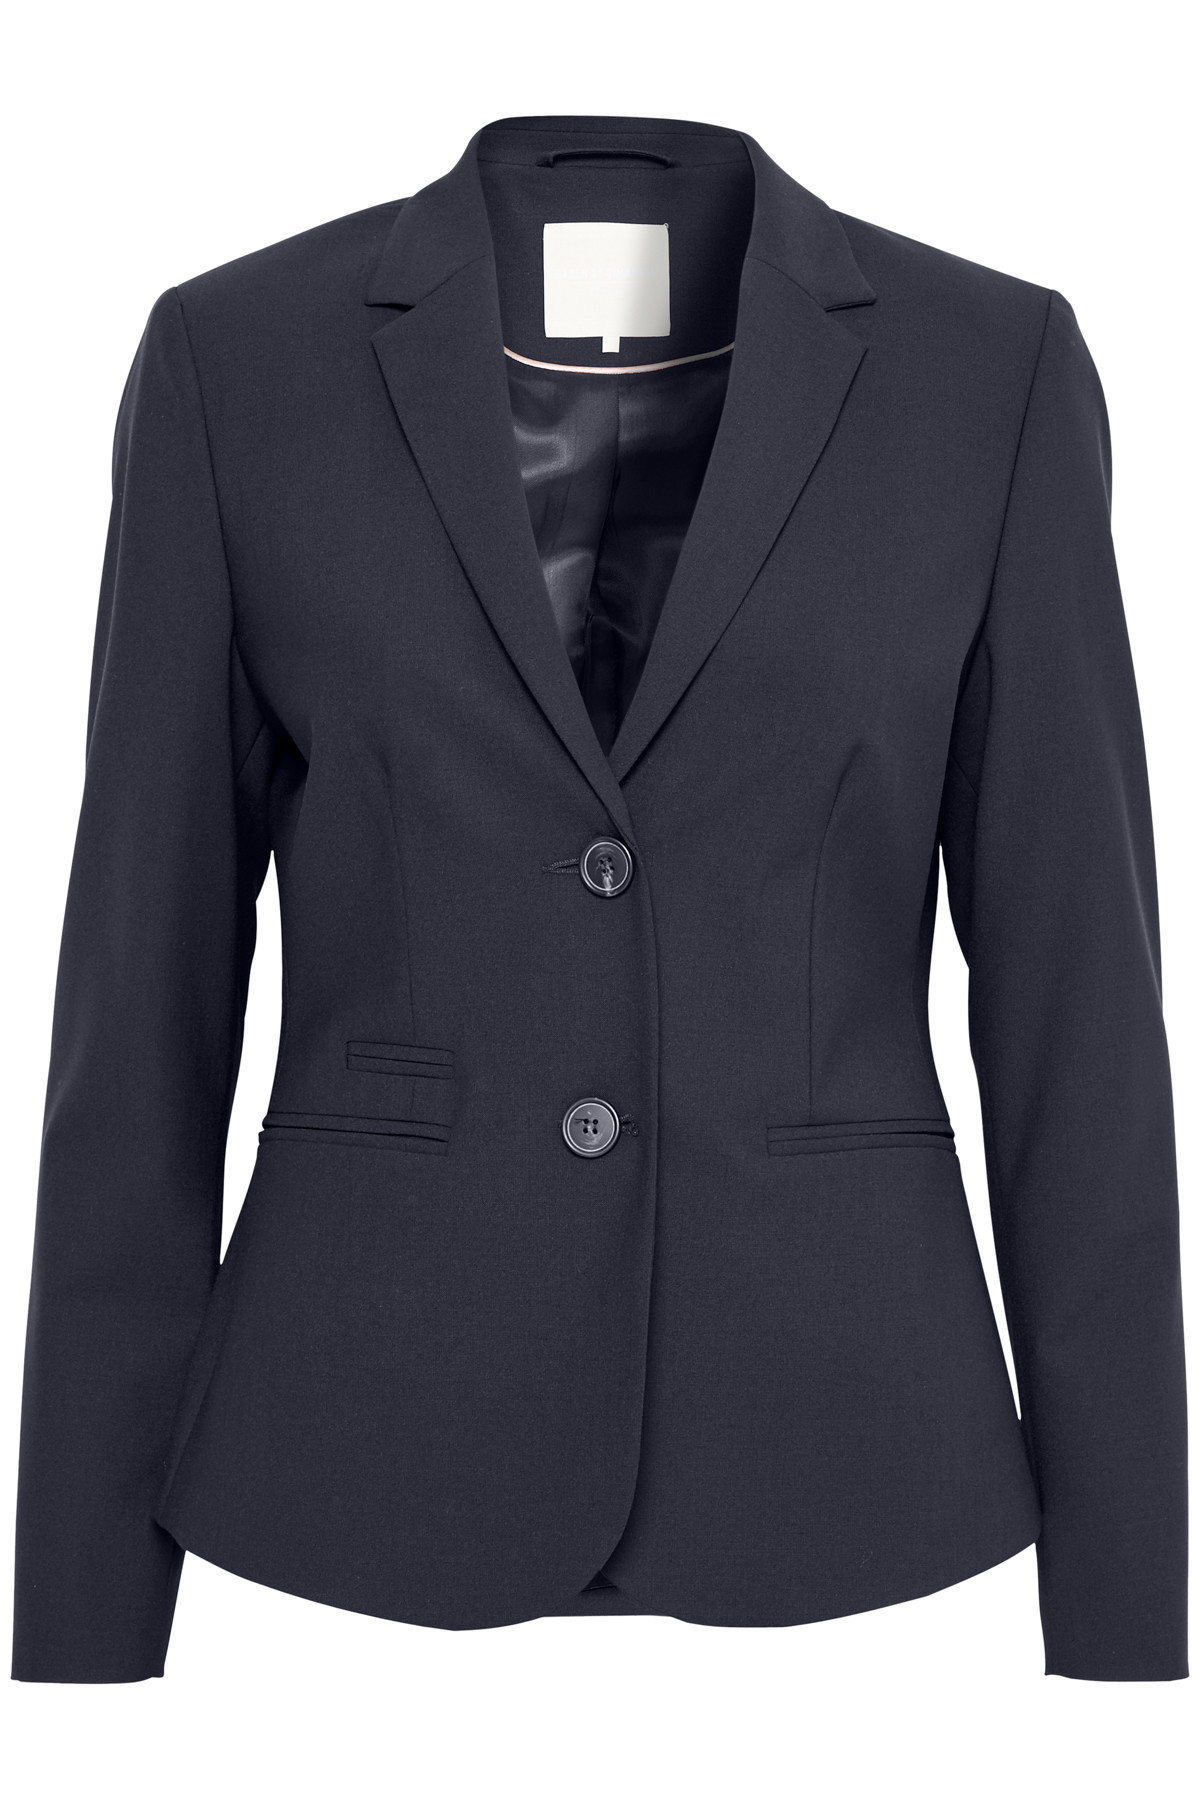 Image of   KAREN BY SIMONSEN SYDNEY BLAZER 10102001 D (Dark Blue 40520, 38)